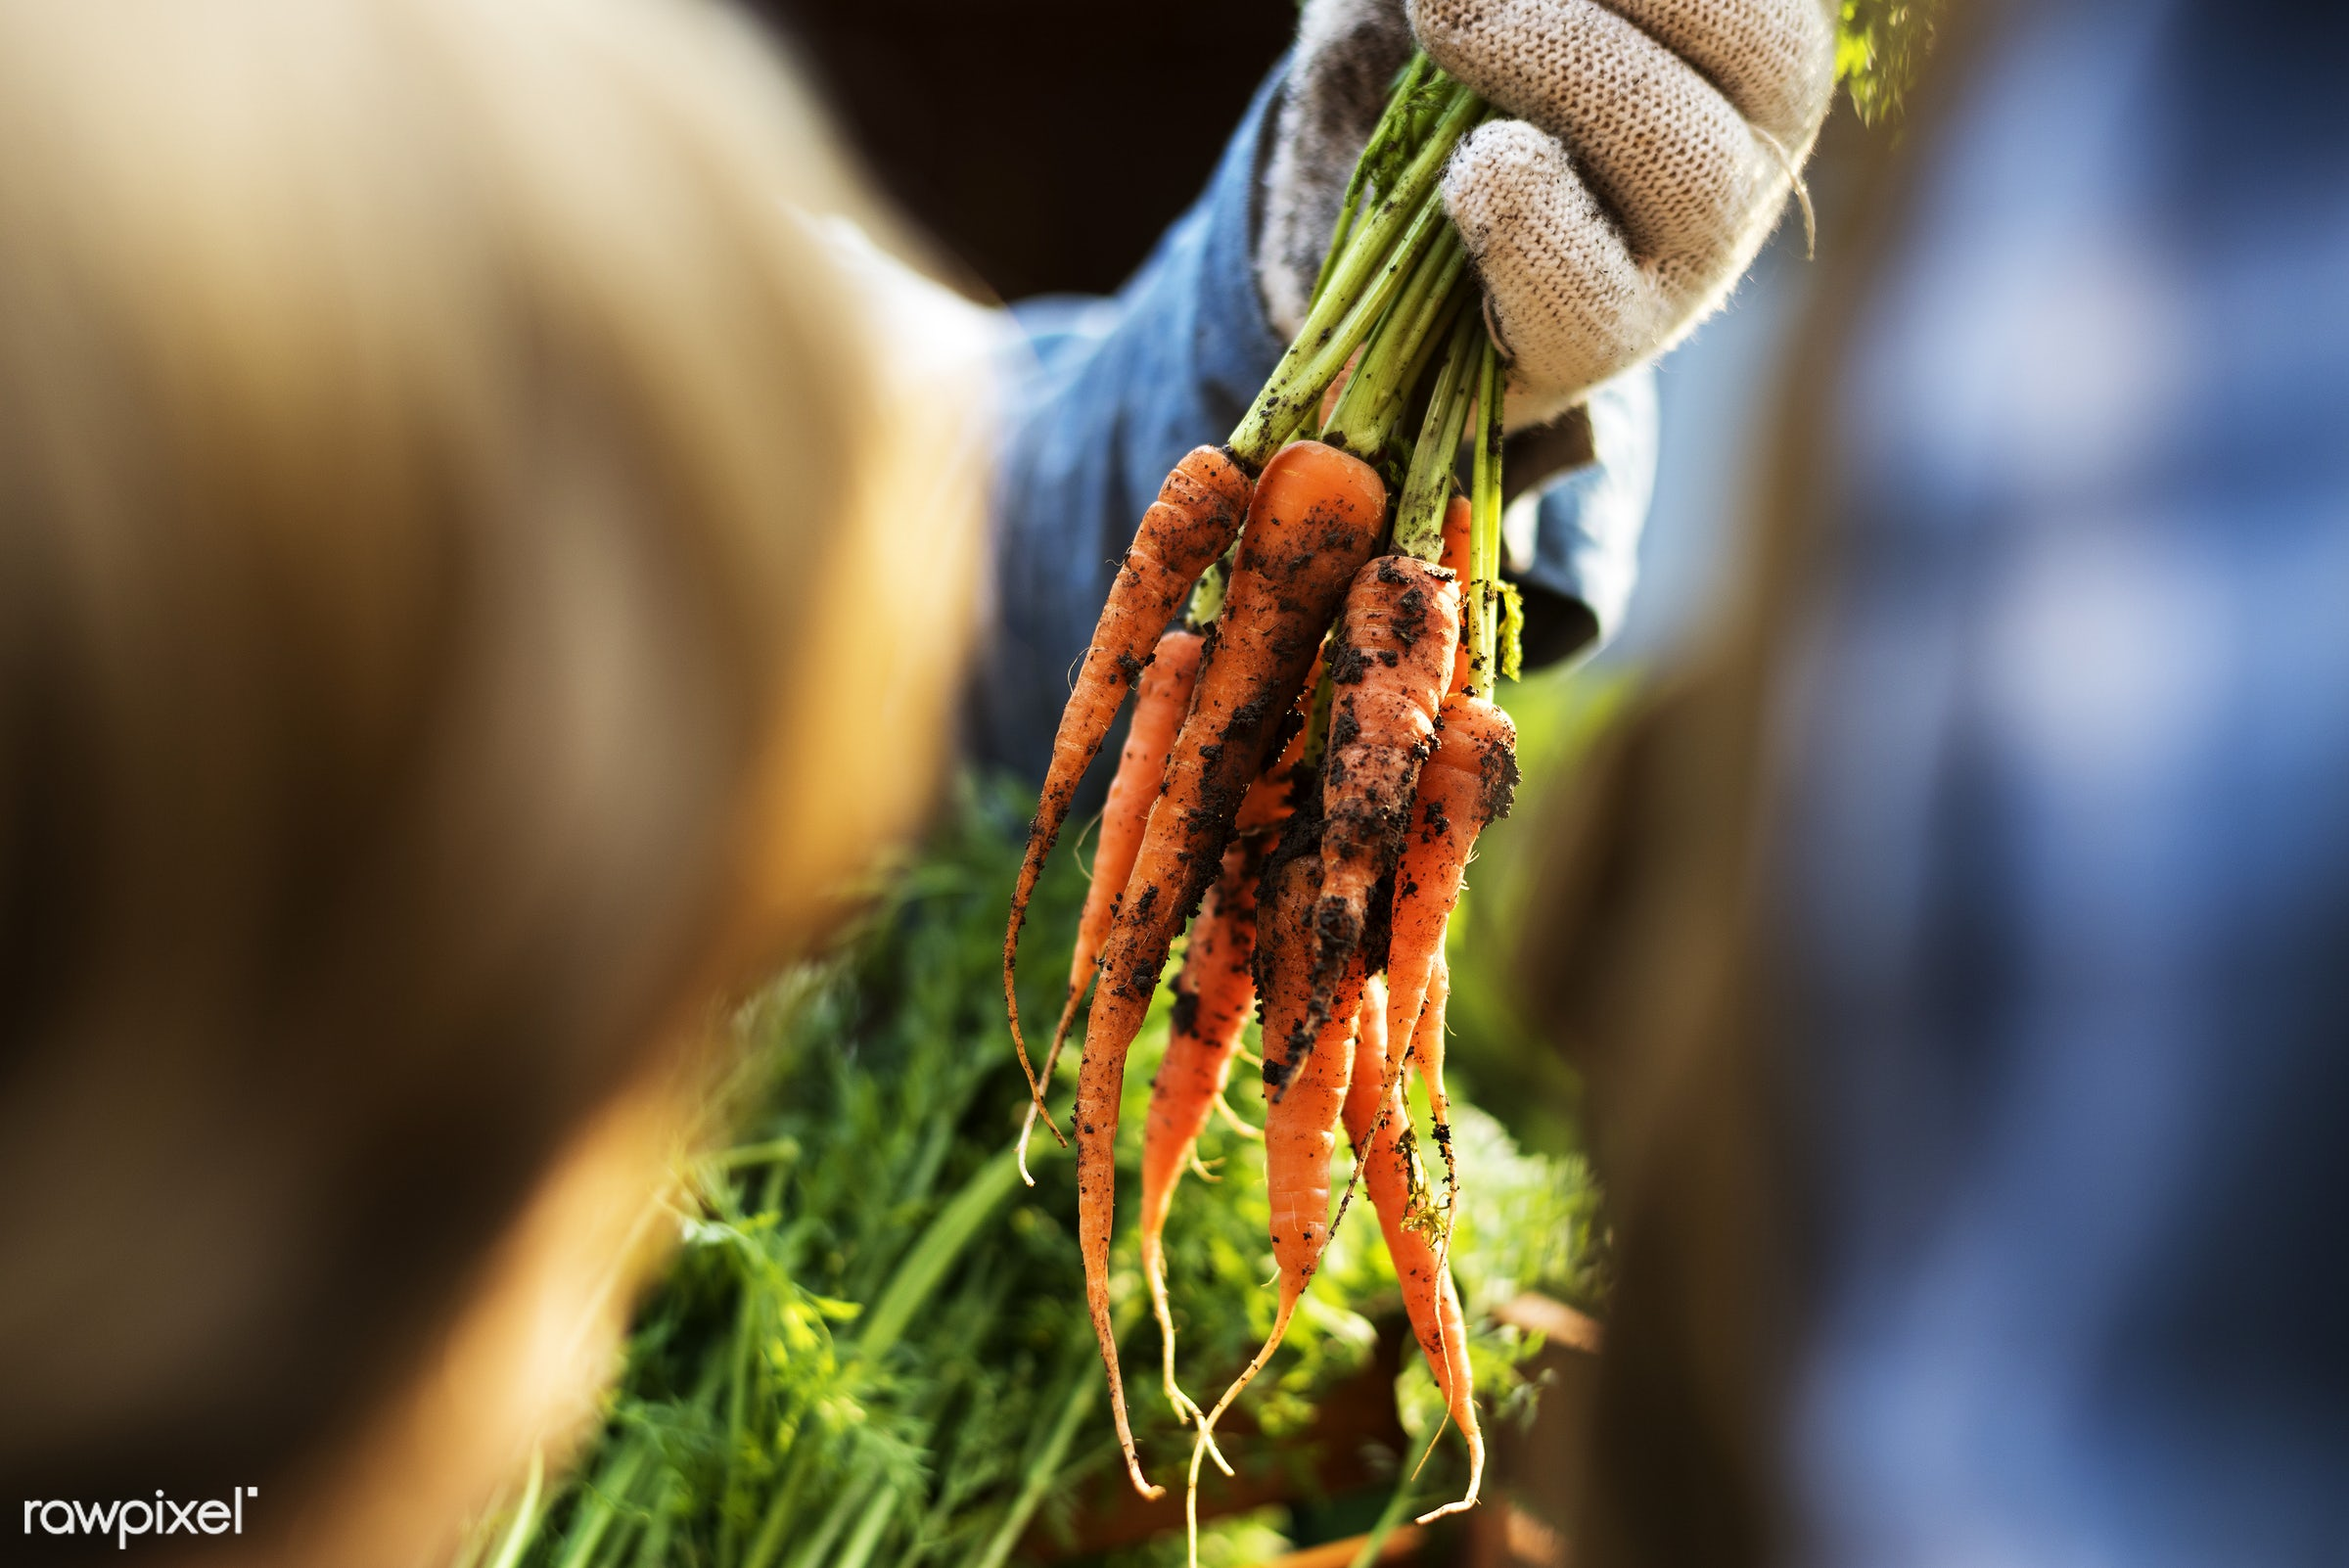 plant, raw, carrot, botany, people, hand, farmer, nature, fresh, conservation, vegetarian, ingredient, ecology, hold, season...